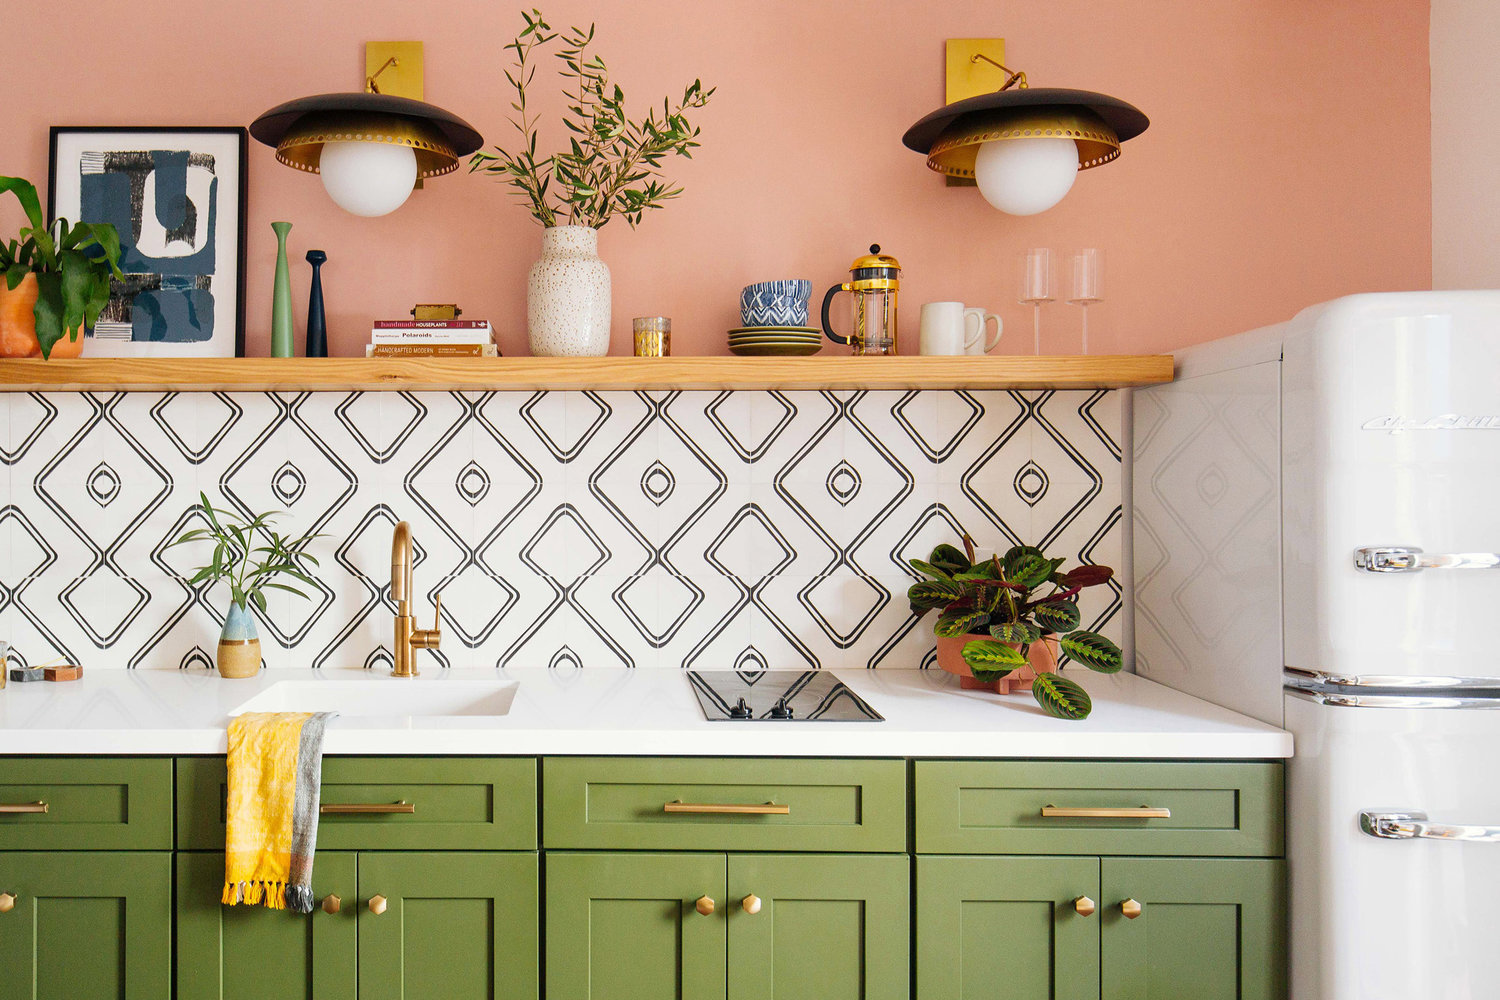 One Room Challenge Fall 2018 | The quirky, eclectic kitchenette from Dabito is so fun - I love the green cabinets, graphic black and white tile, and the fun brass sconces.